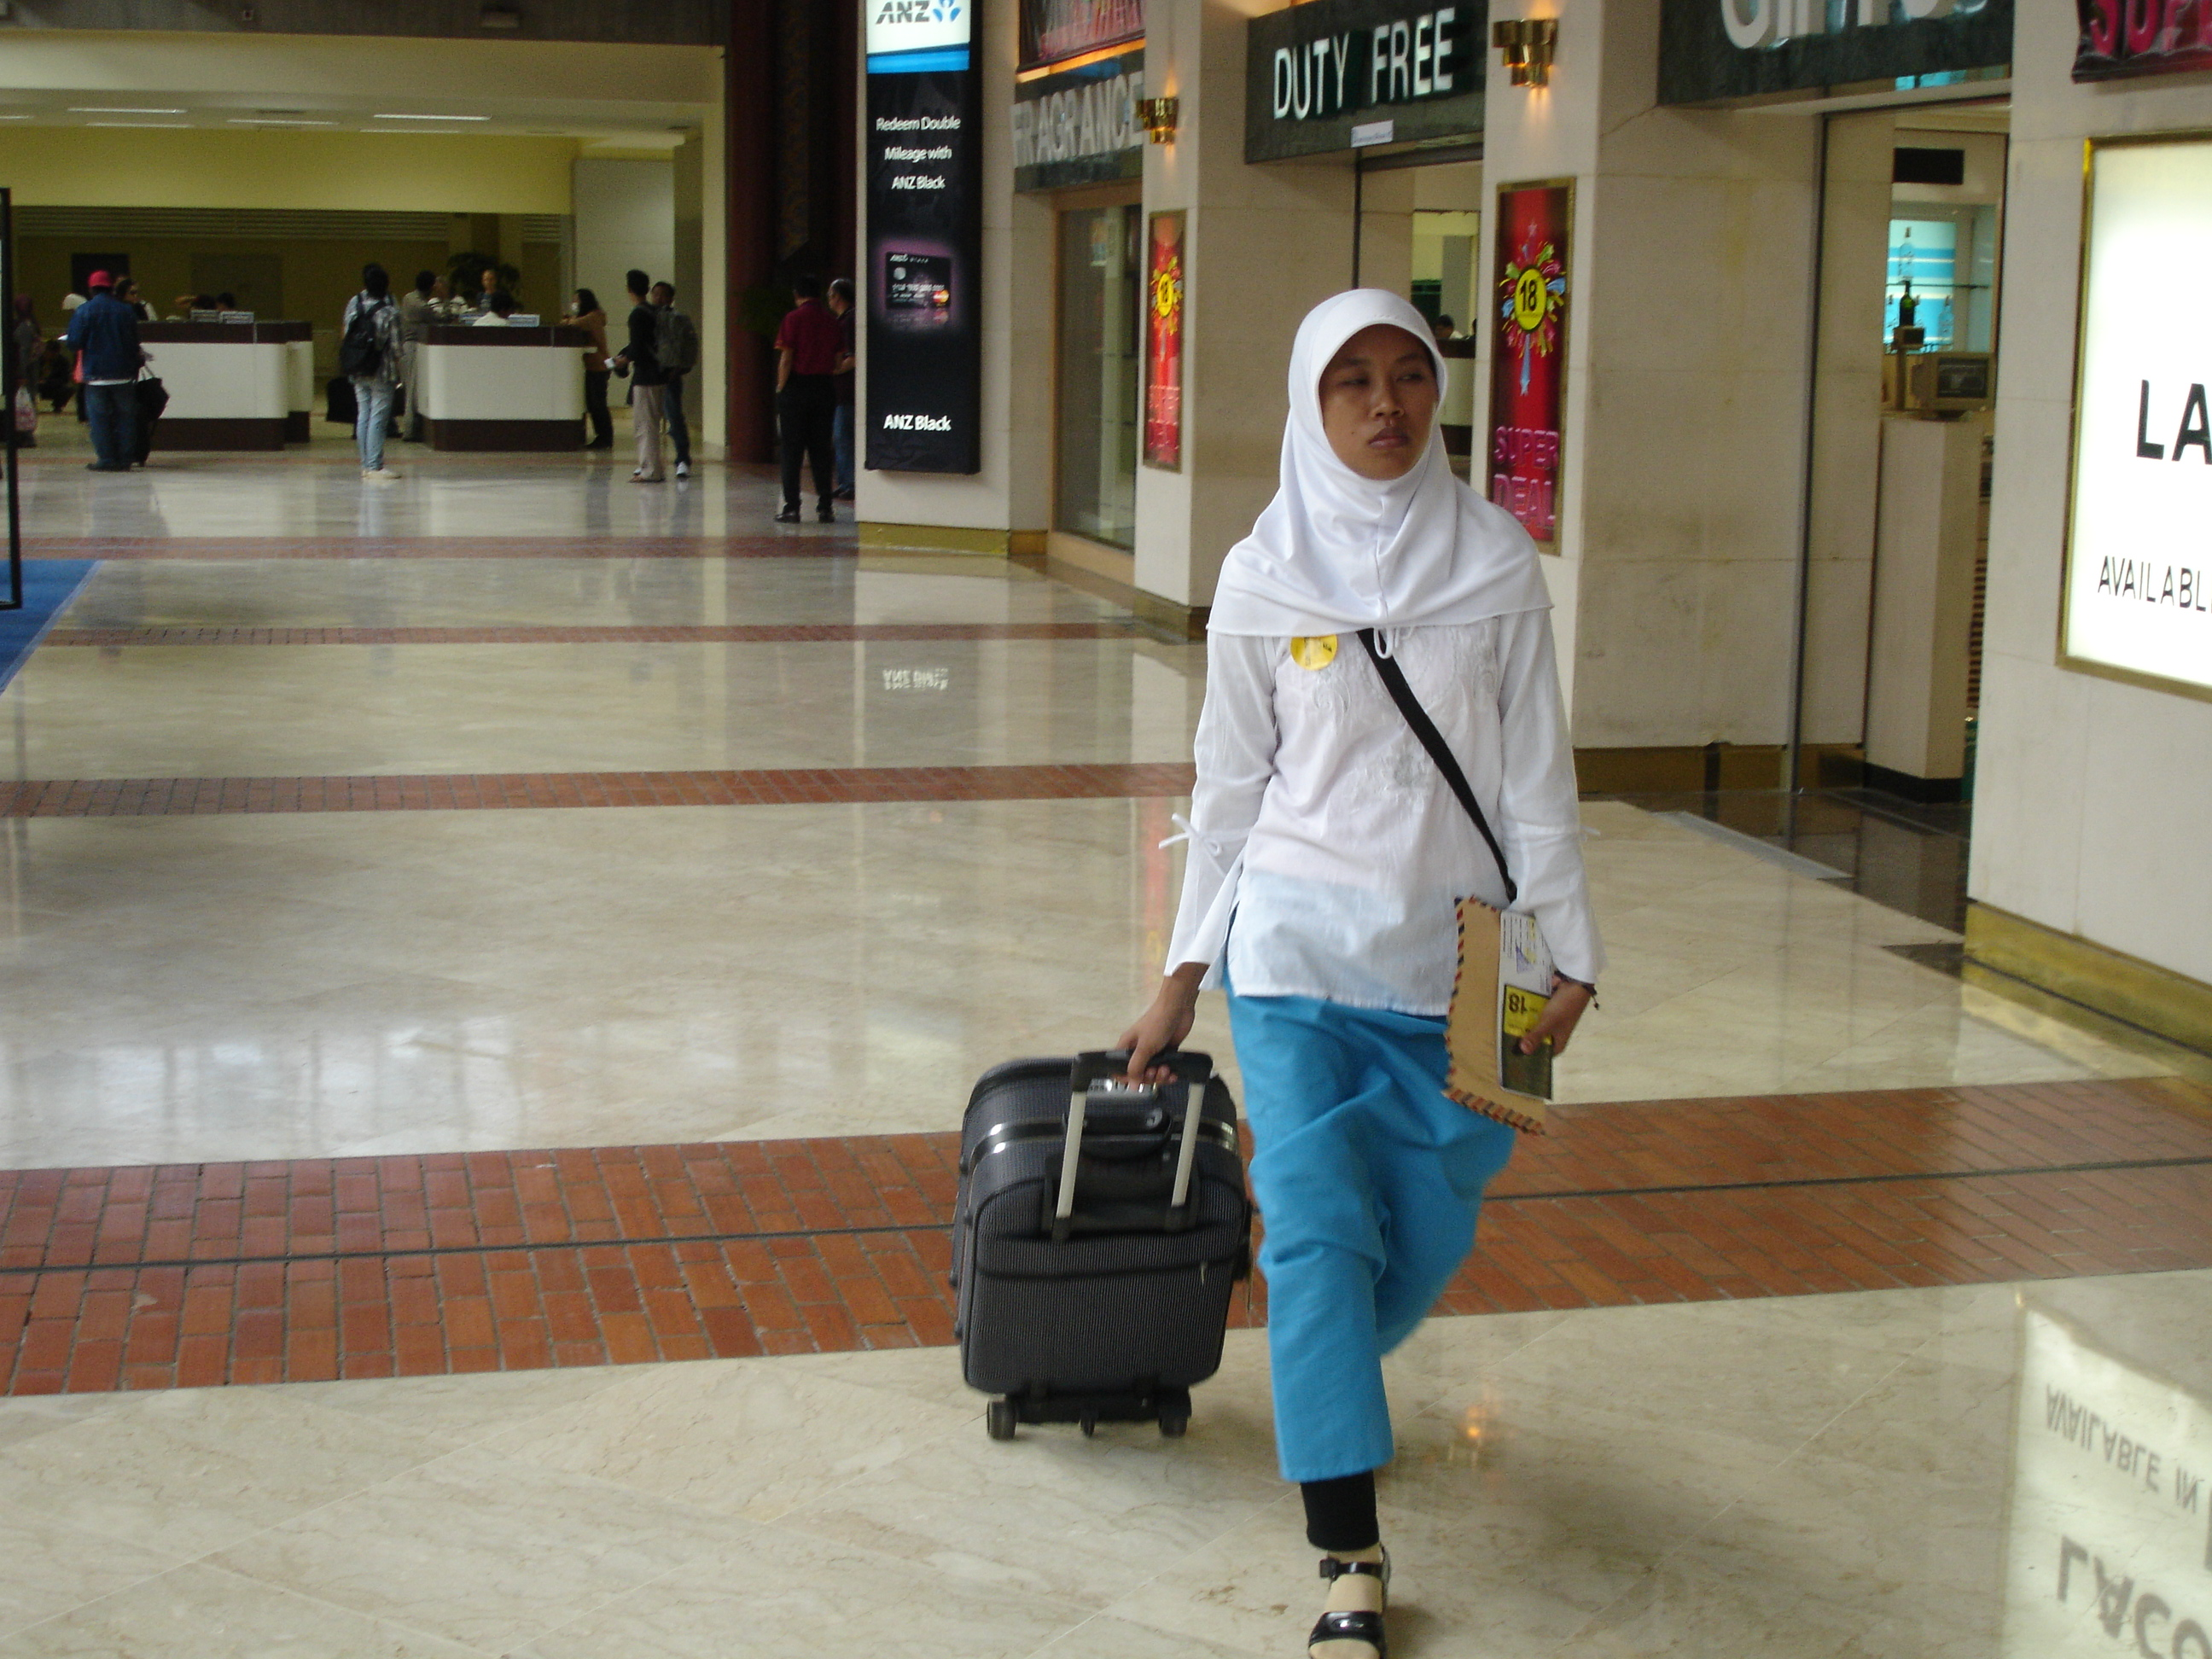 Thousands of women travel abroad each year to work as domestic helpers. About 80 percent of all Indonesian migrant workers are women, mostly domestic workers. Some 60 percent are in the Middle East, including Saudi Arabia, Kuwait, UAE, Jordan and Qatar, w